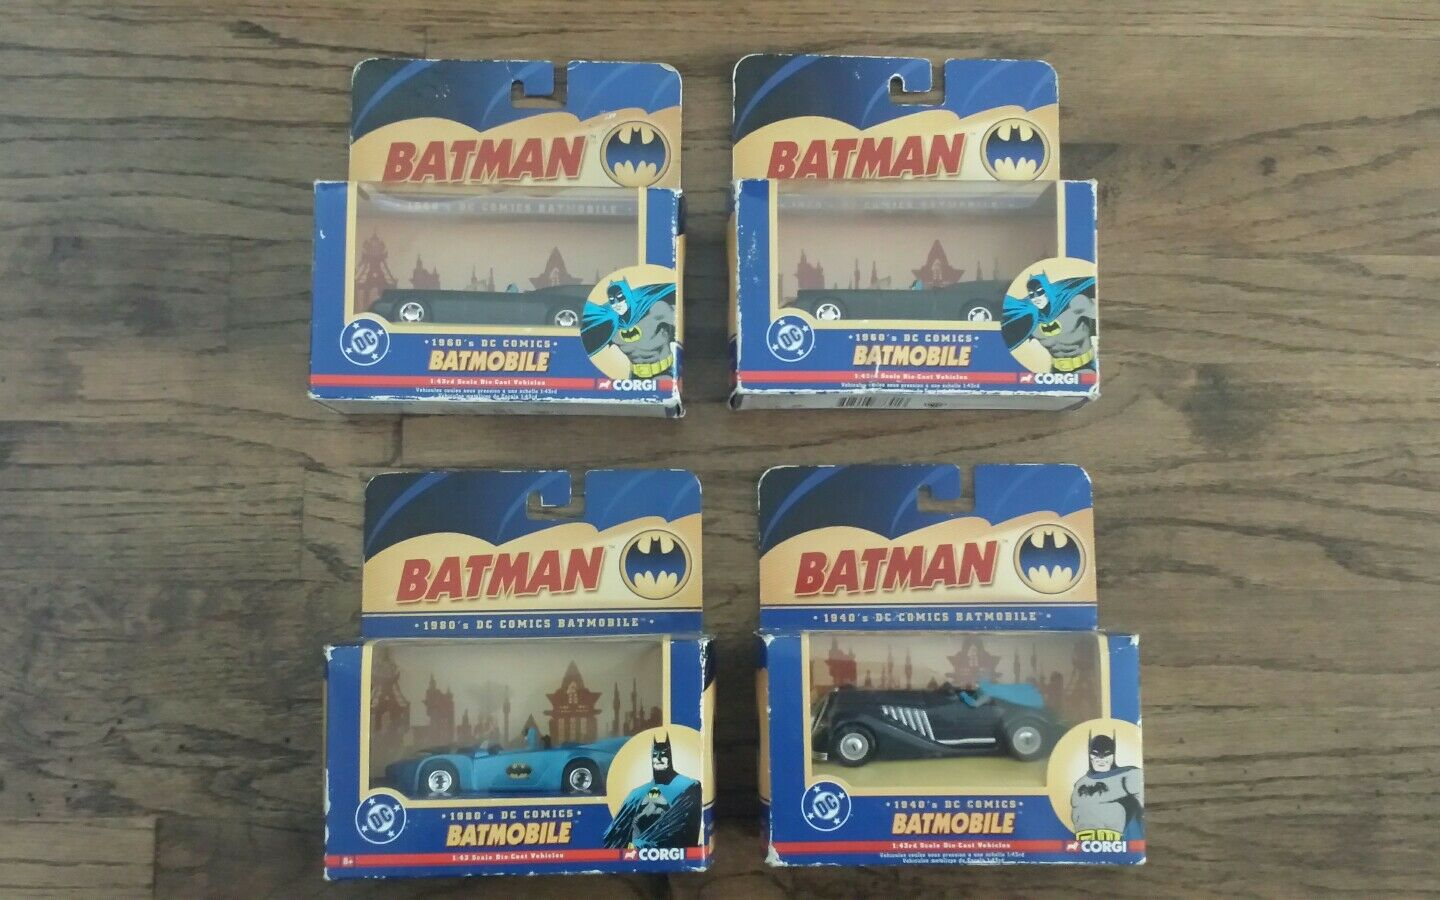 CORGI 2005 Batmobile Lot de 4, échelle 1 43, Voitures